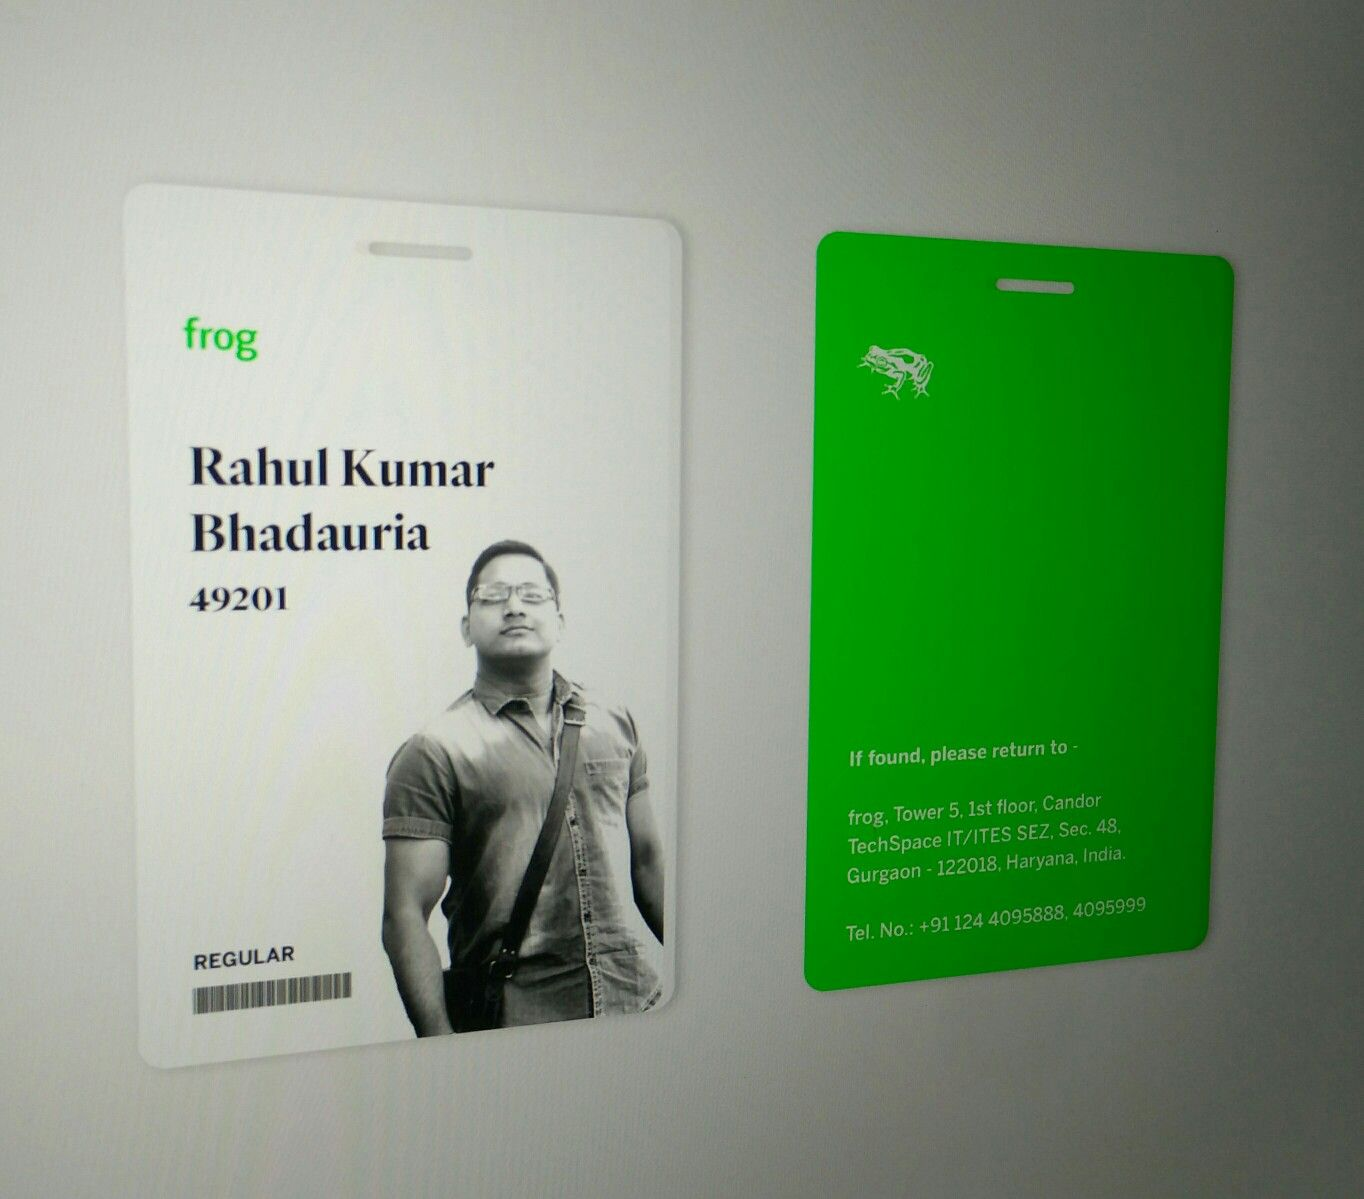 frog employee ID card concept in progress. #idcard #frog #green ...